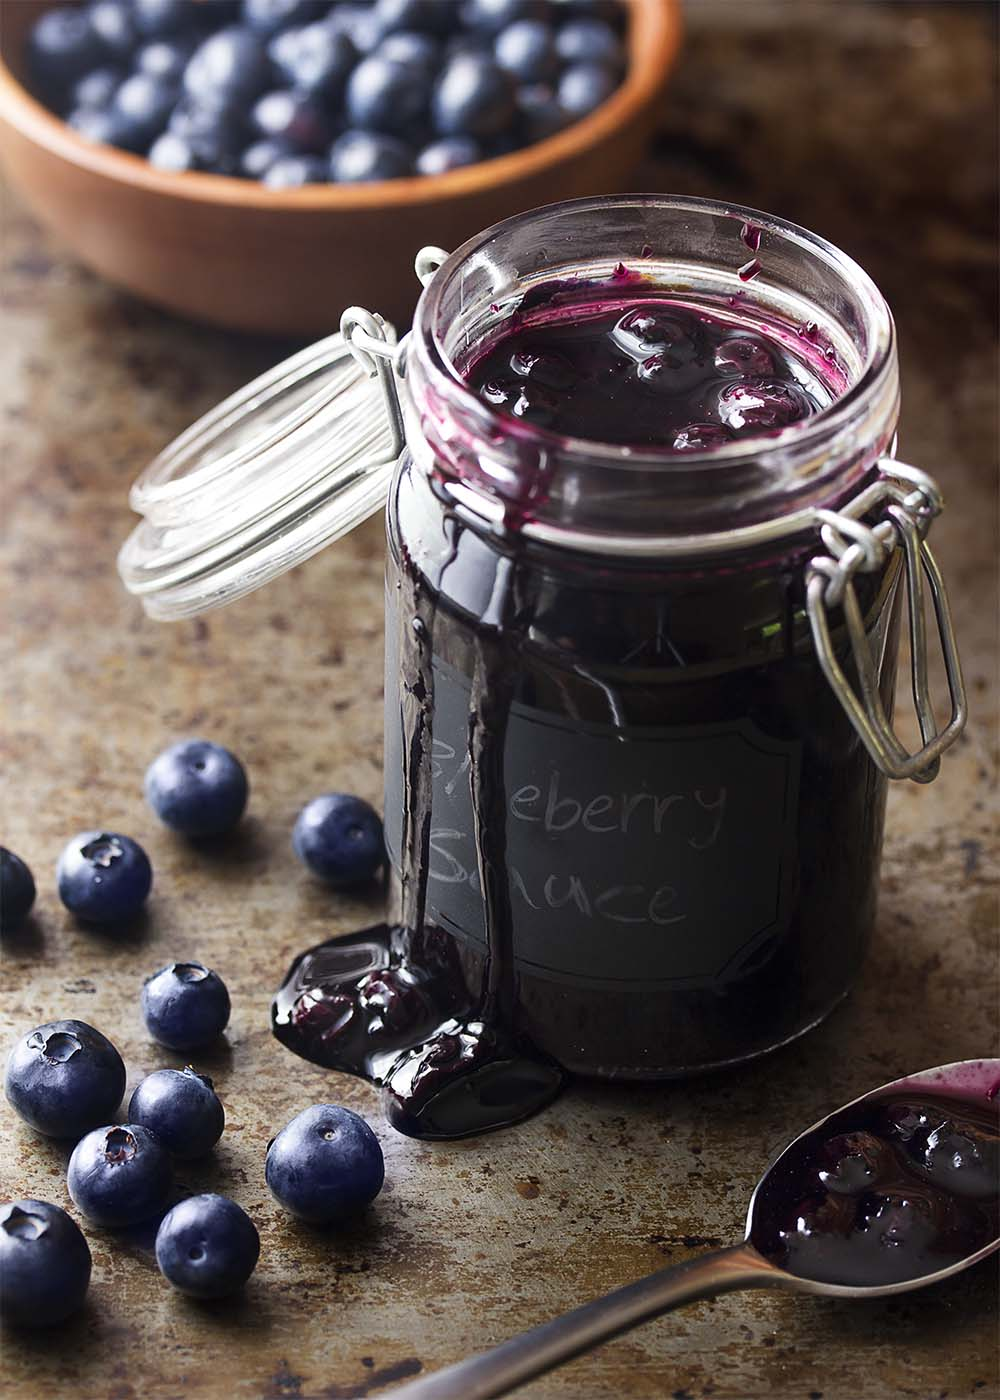 Fresh blueberry sauce in a mason jar with the cap off showing the sauce inside.